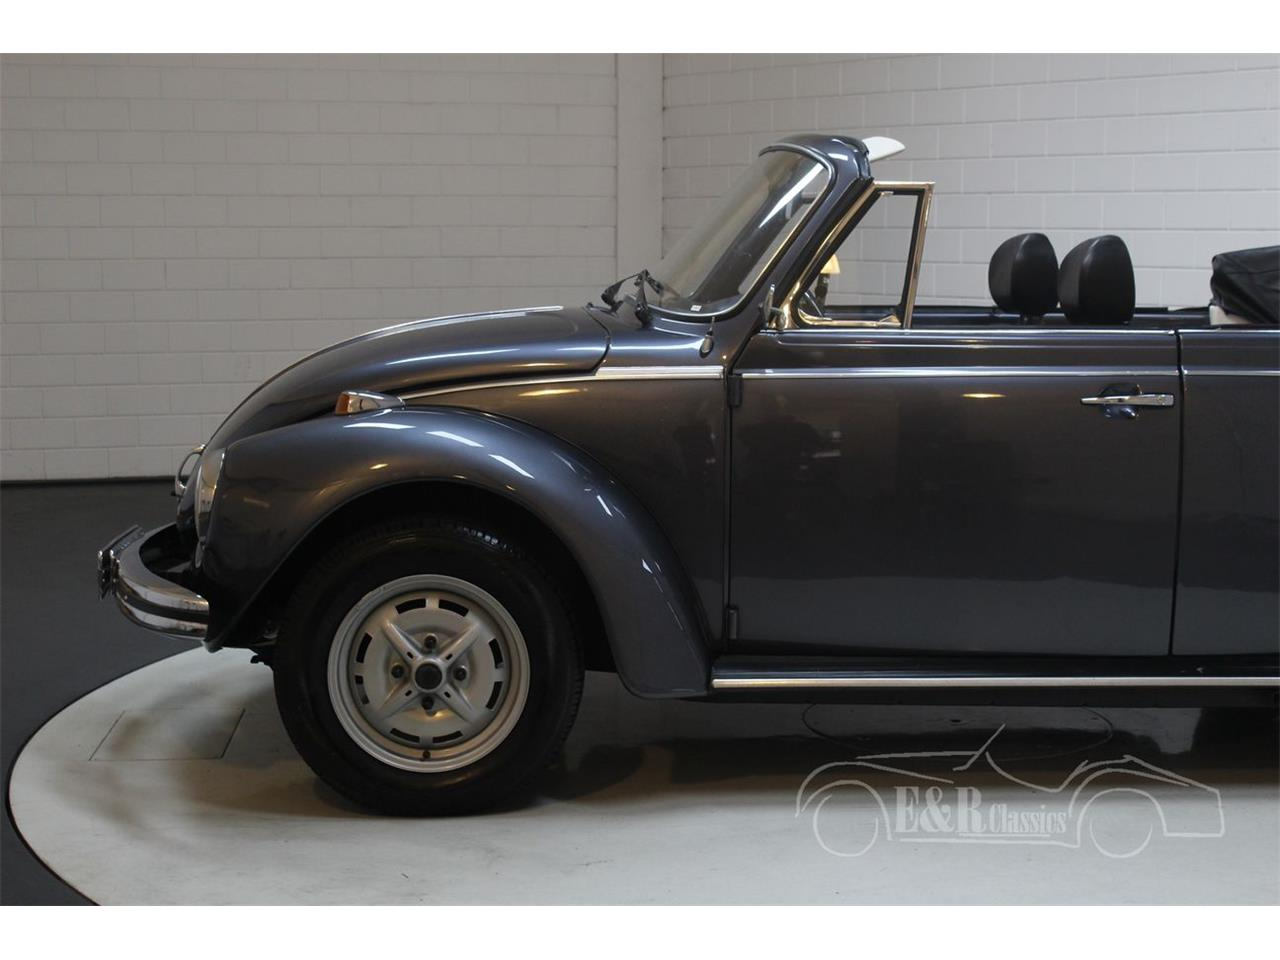 Large Picture of '74 Volkswagen Beetle located in Noord-Brabant - $27,950.00 - QC3W